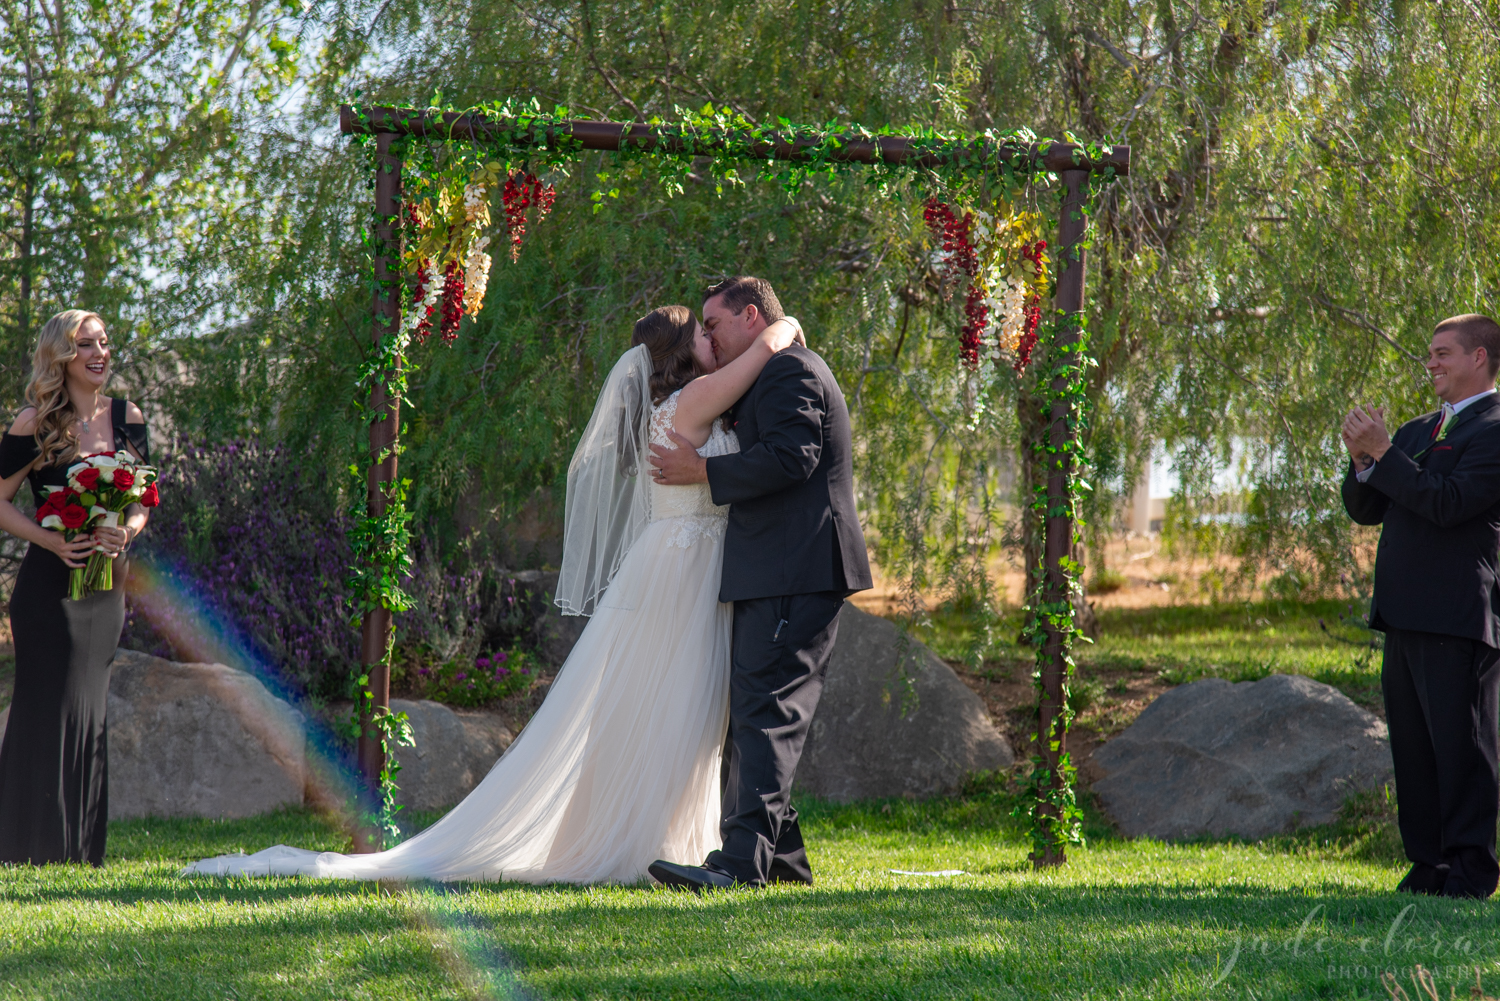 Glendale-Wedding-Photographer-Blog-Jade-Elora-069-2.jpg